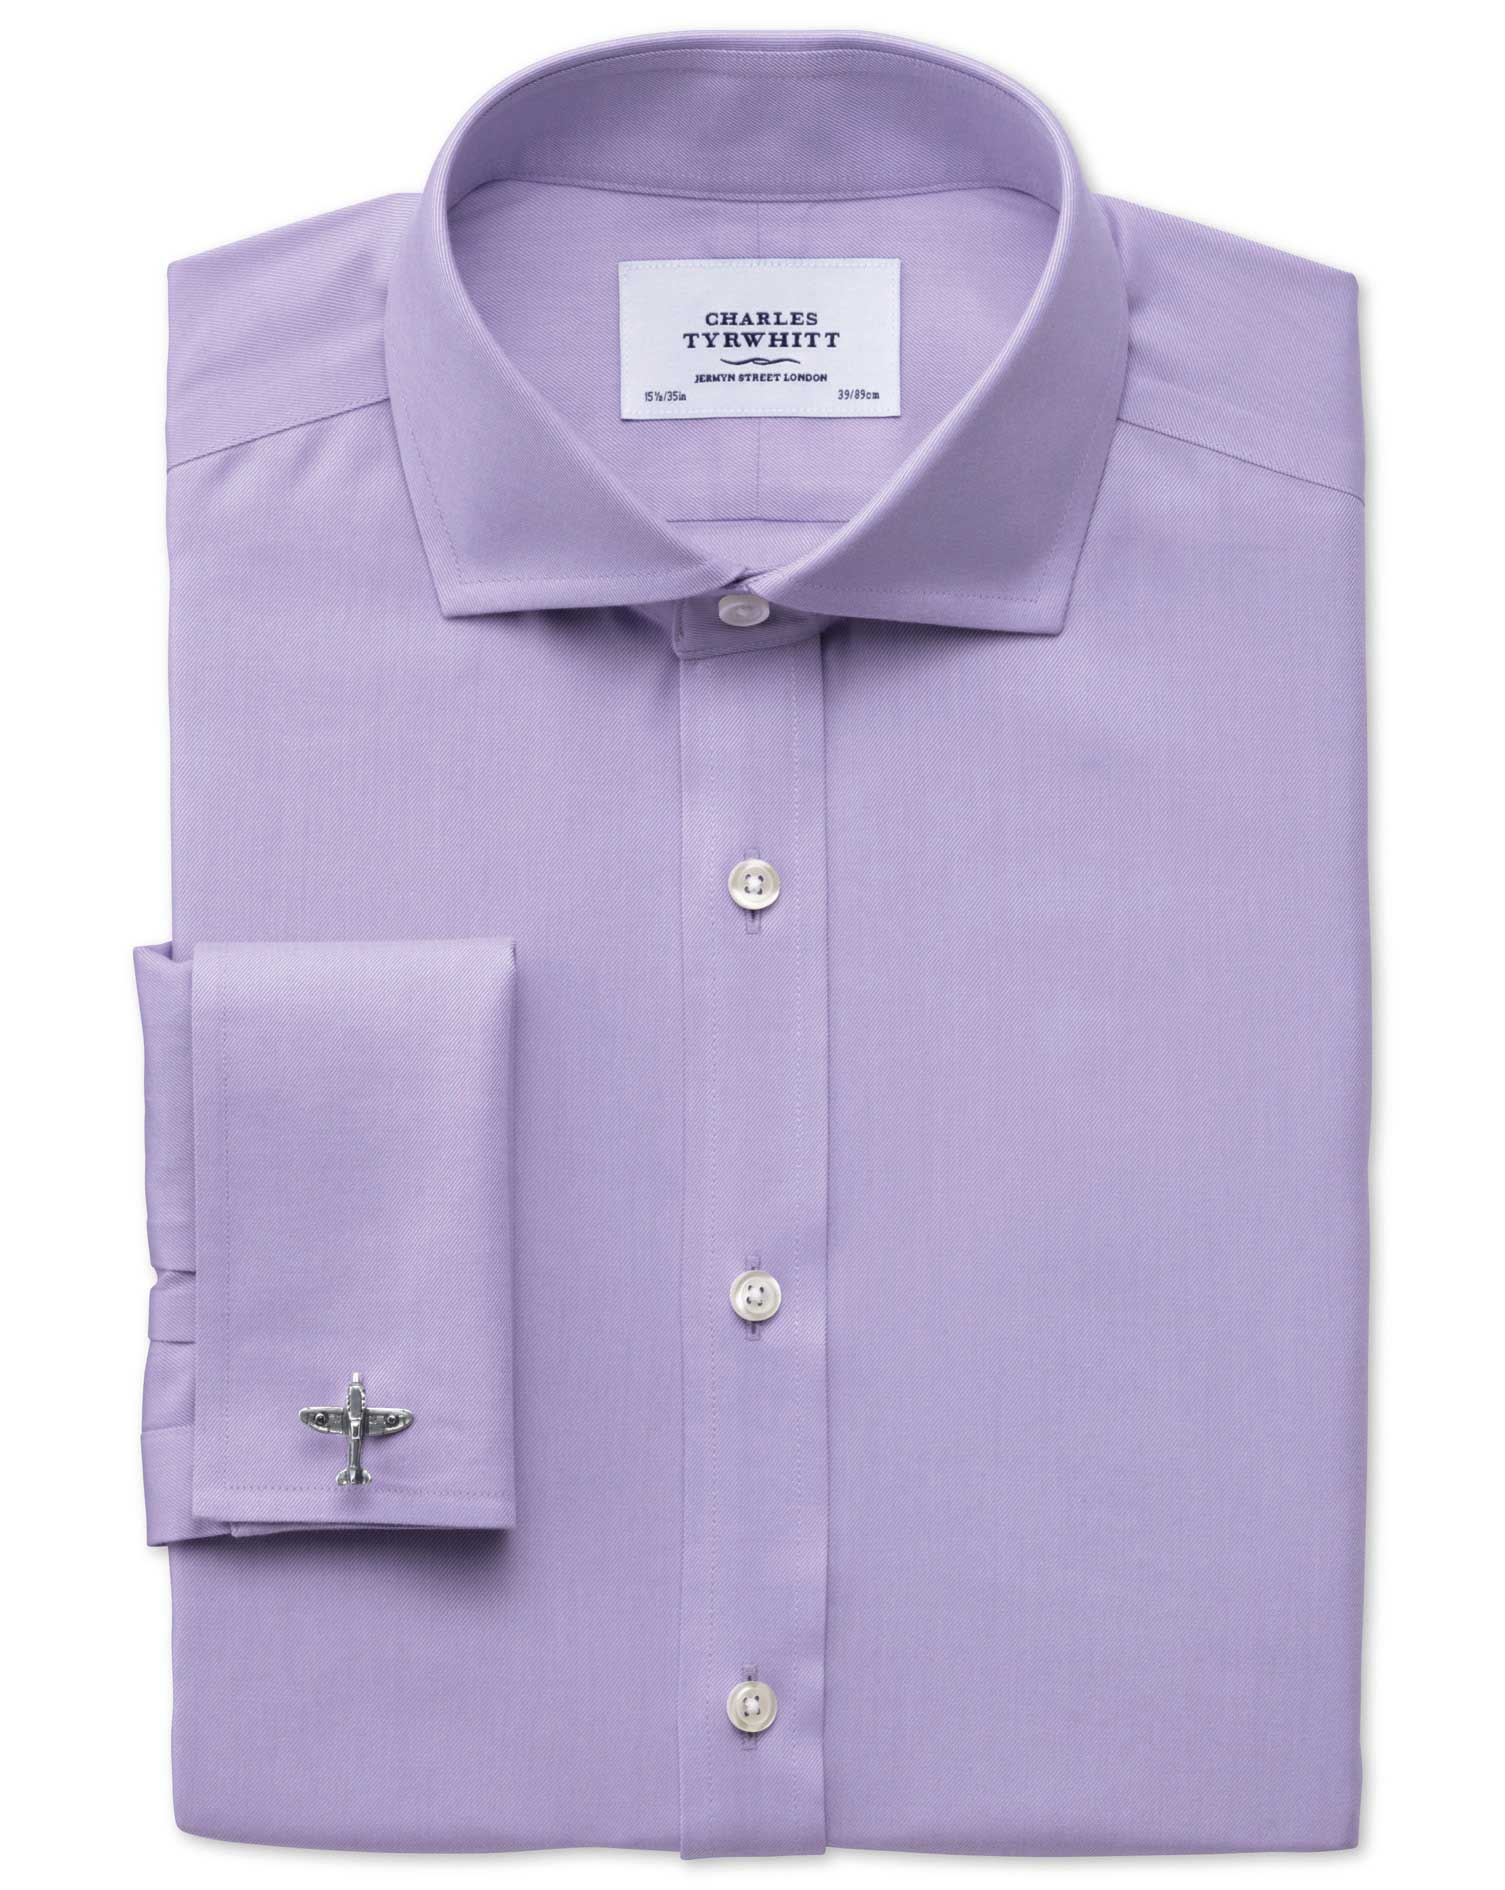 Slim Fit Cutaway Collar Non-Iron Twill Lilac Cotton Formal Shirt Single Cuff Size 17/34 by Charles T